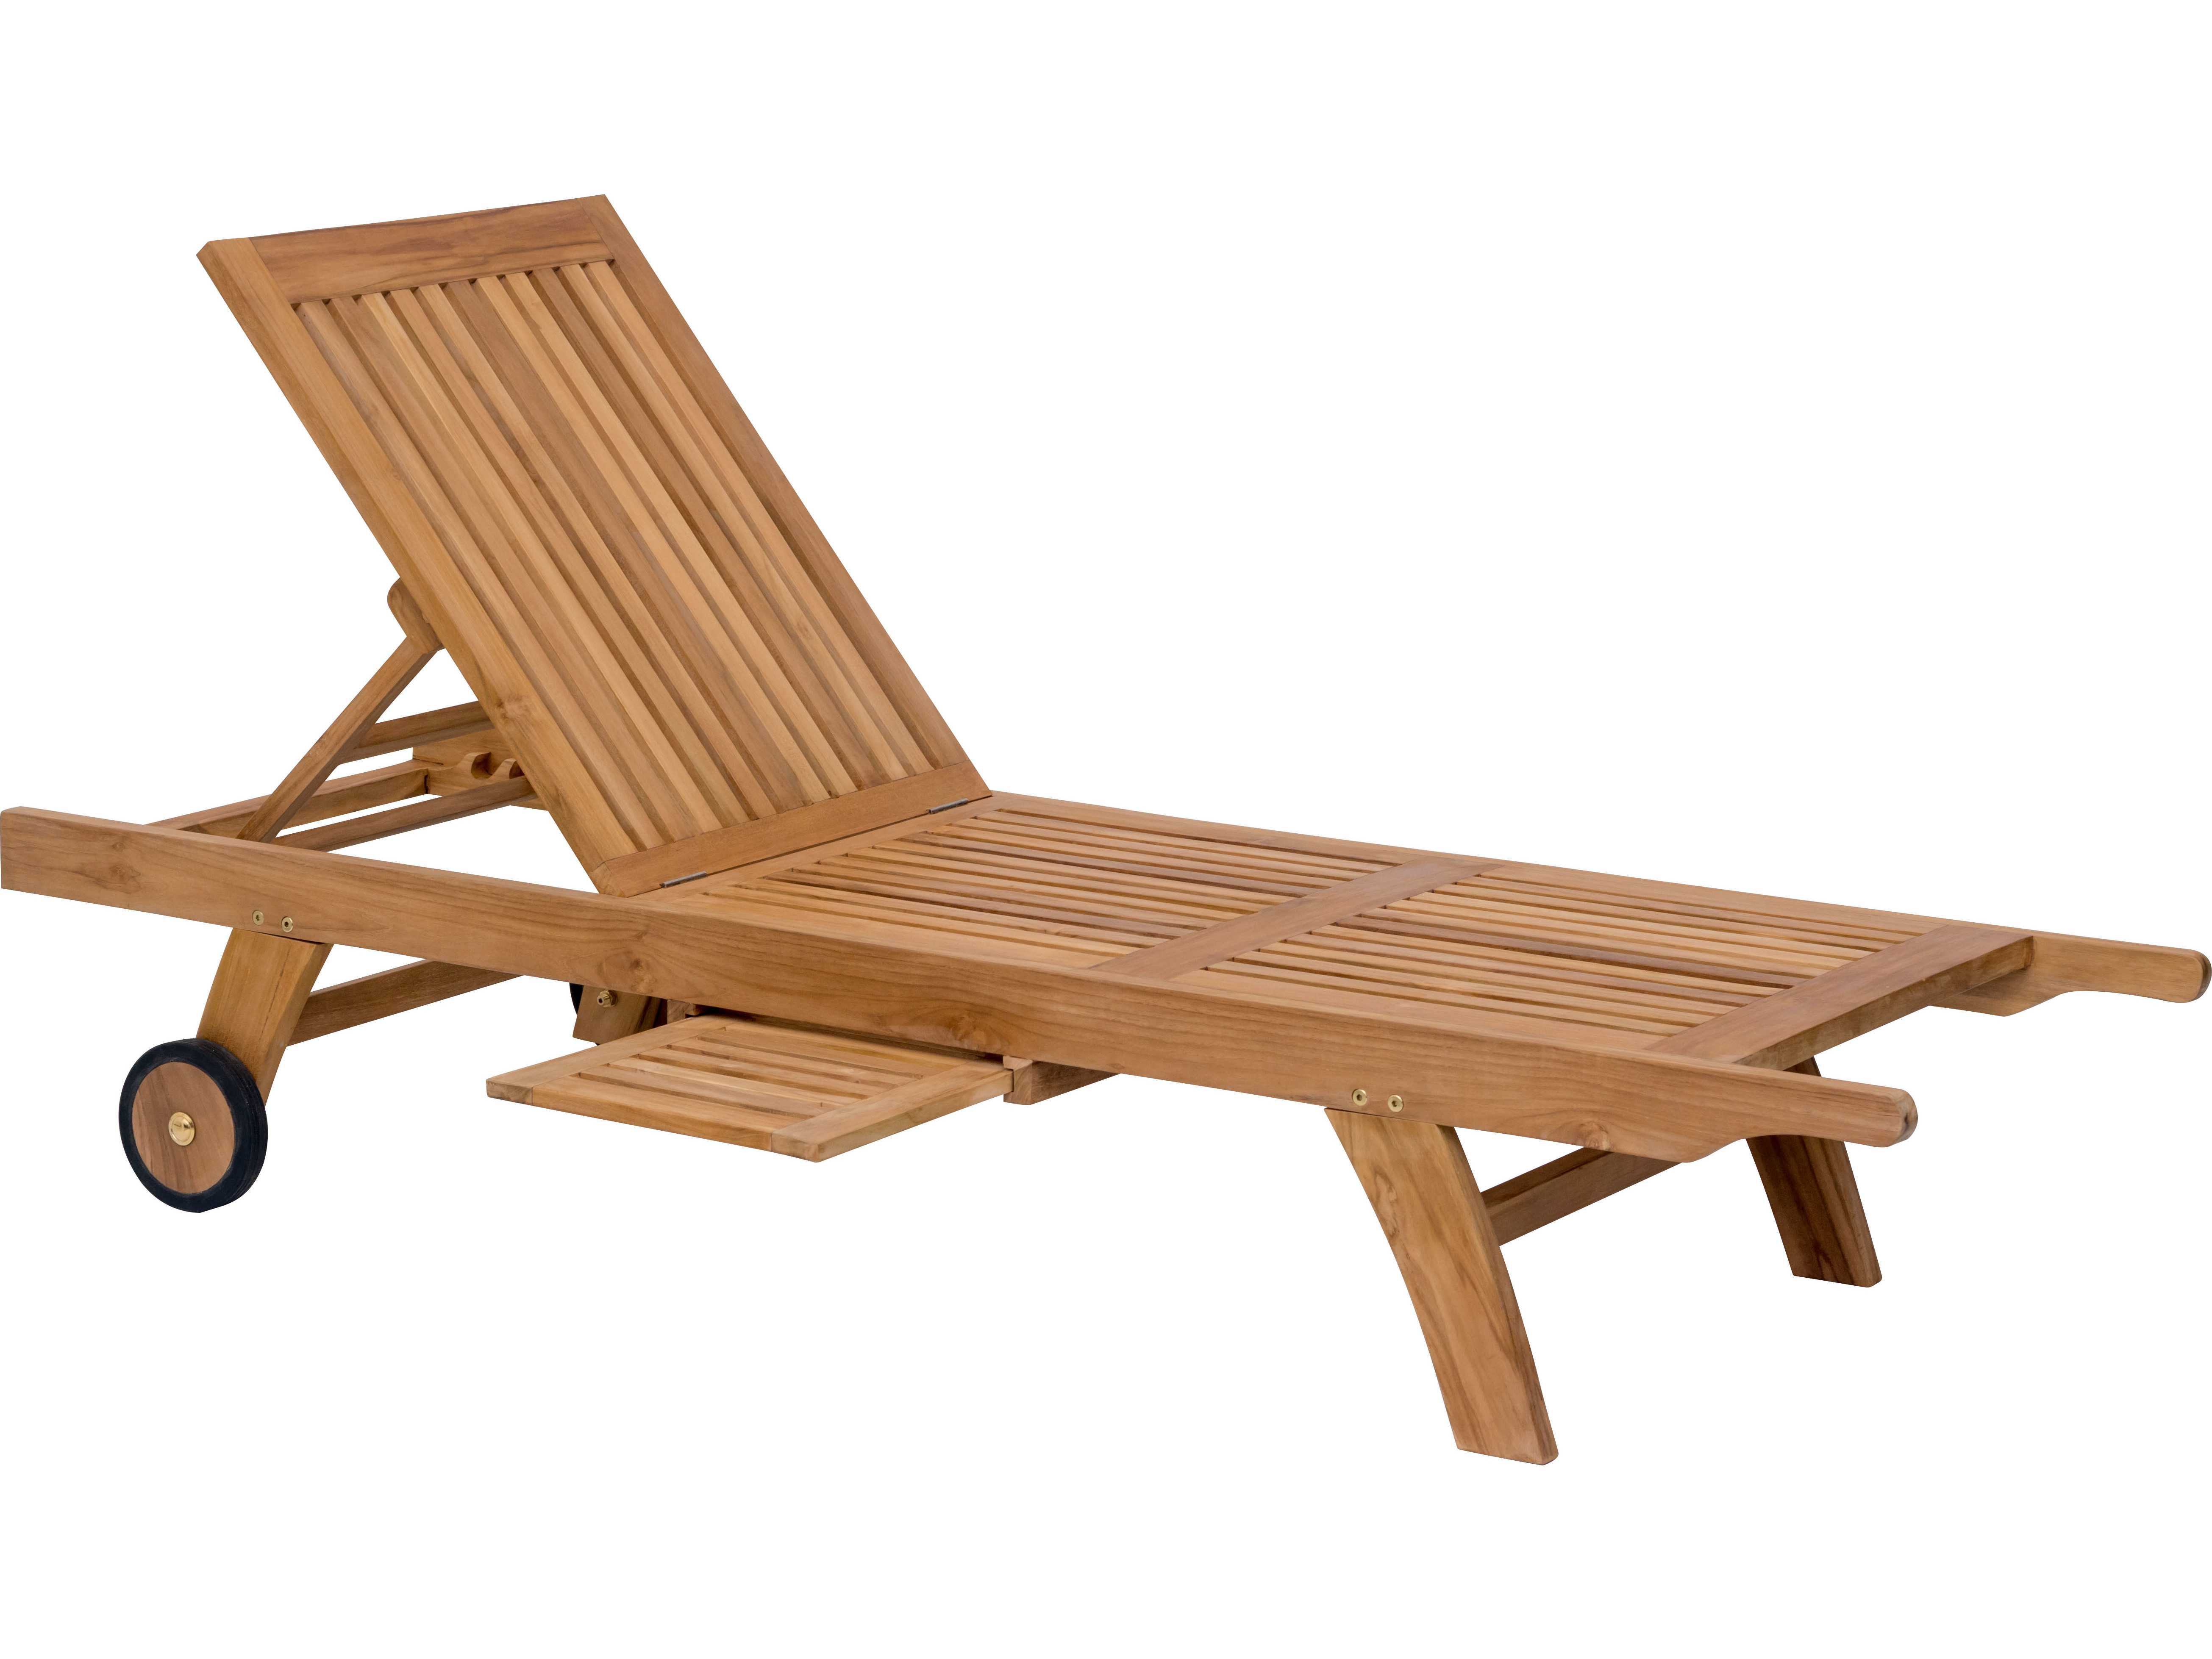 Zuo Outdoor Starboard Teak Chaise Lounge In Natural 703560 - Outdoor Teak Loungers